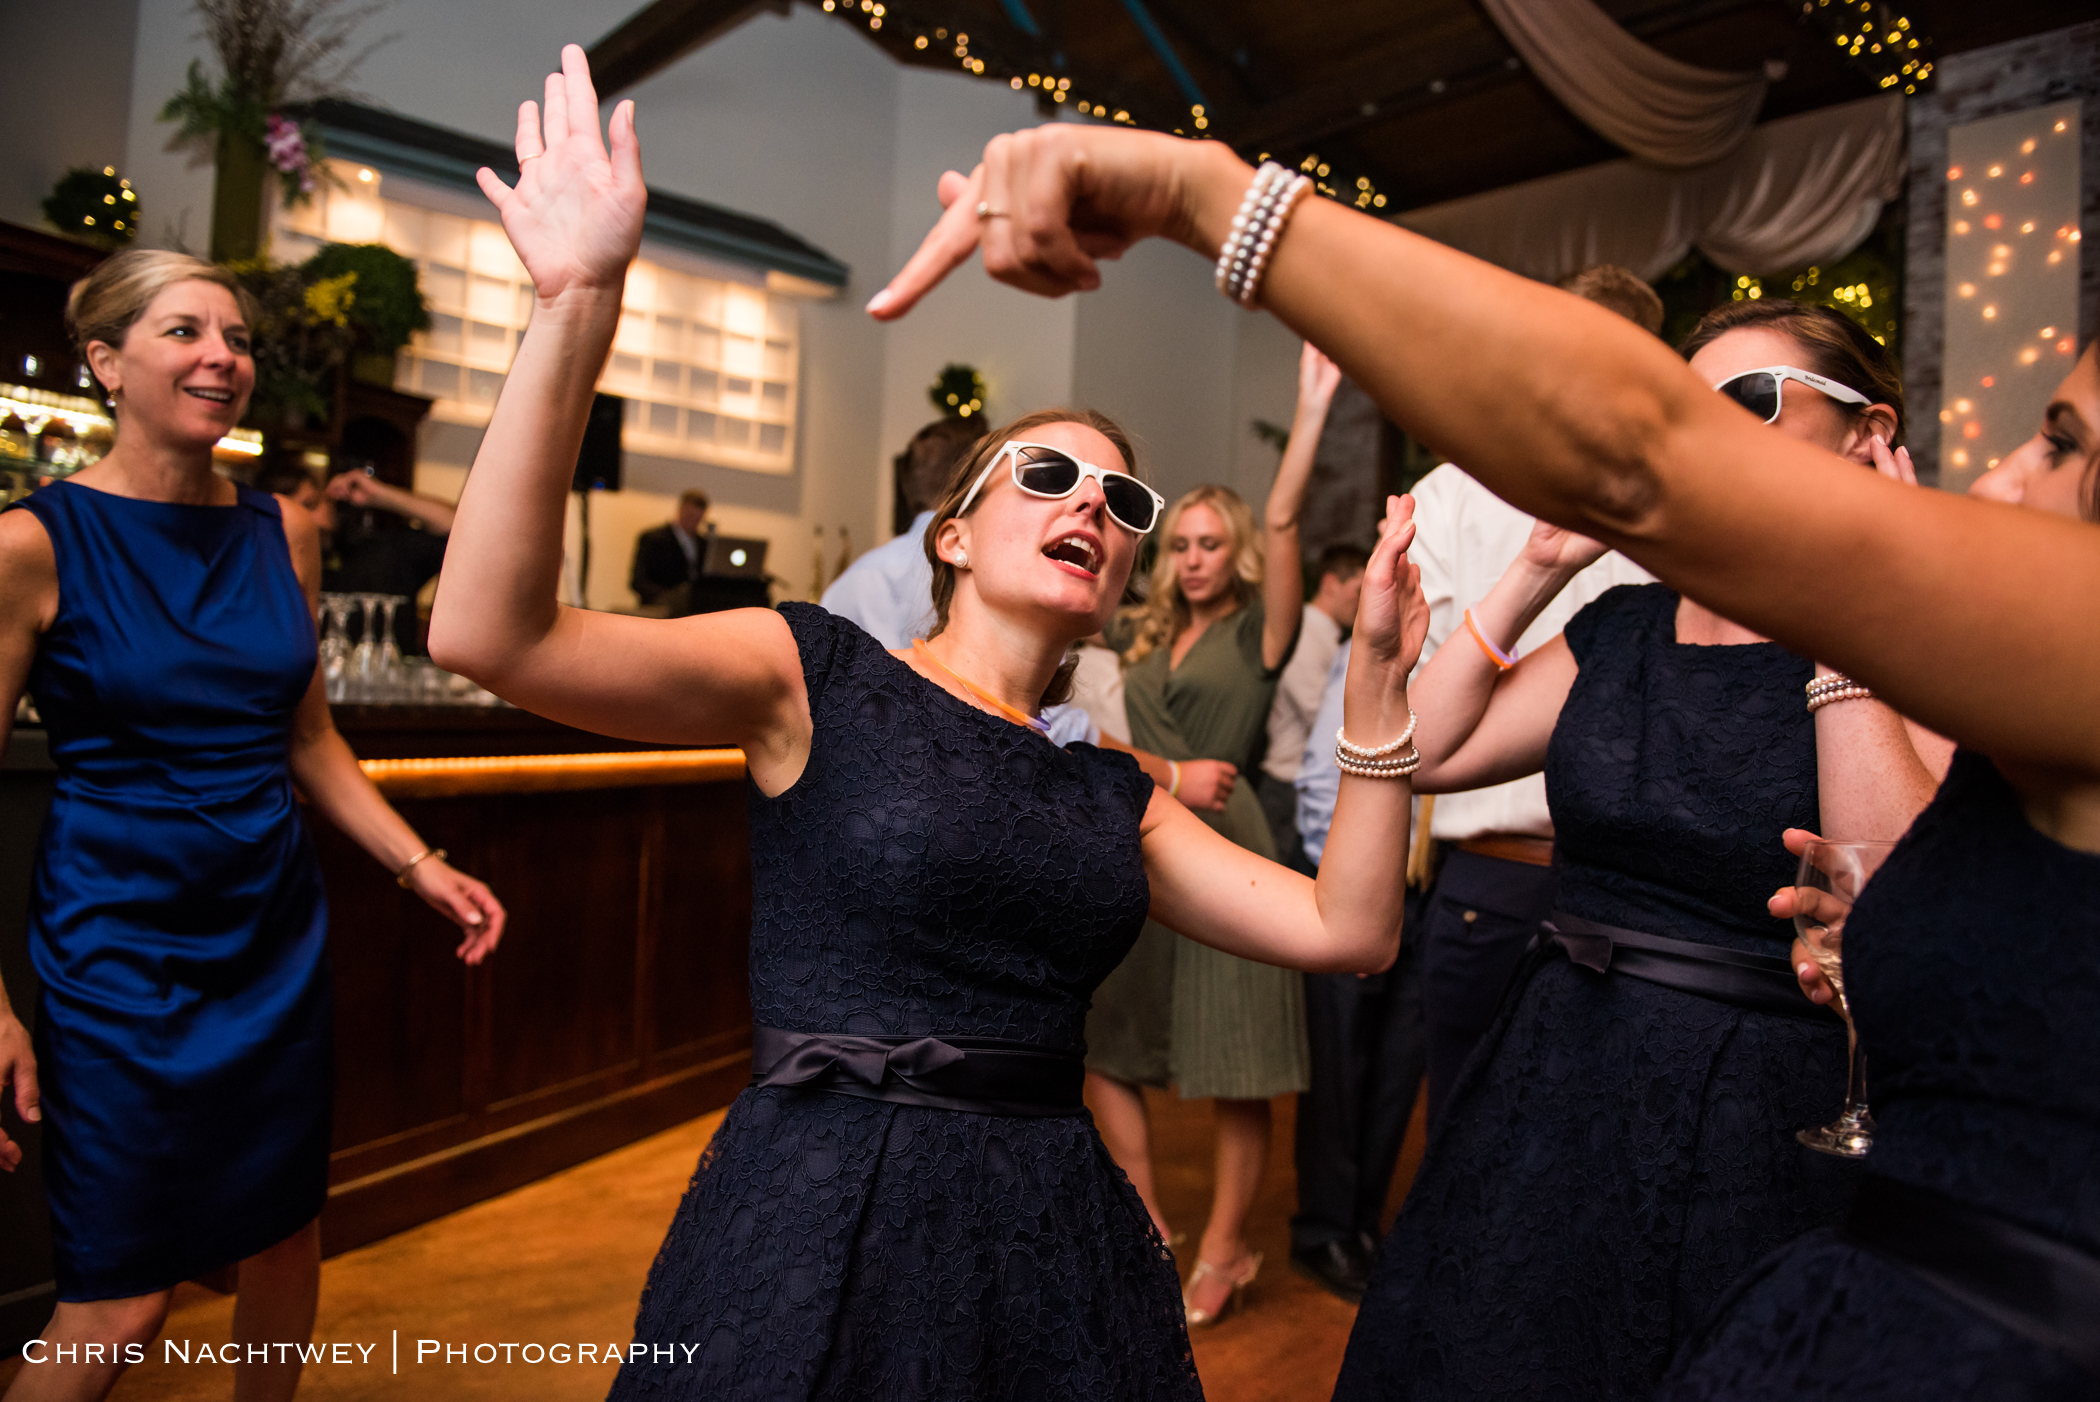 pond-house-cafe-wedding-hartford-ct-photos-chris-nachtwey-photography-2017-jackie-matt-51.jpg